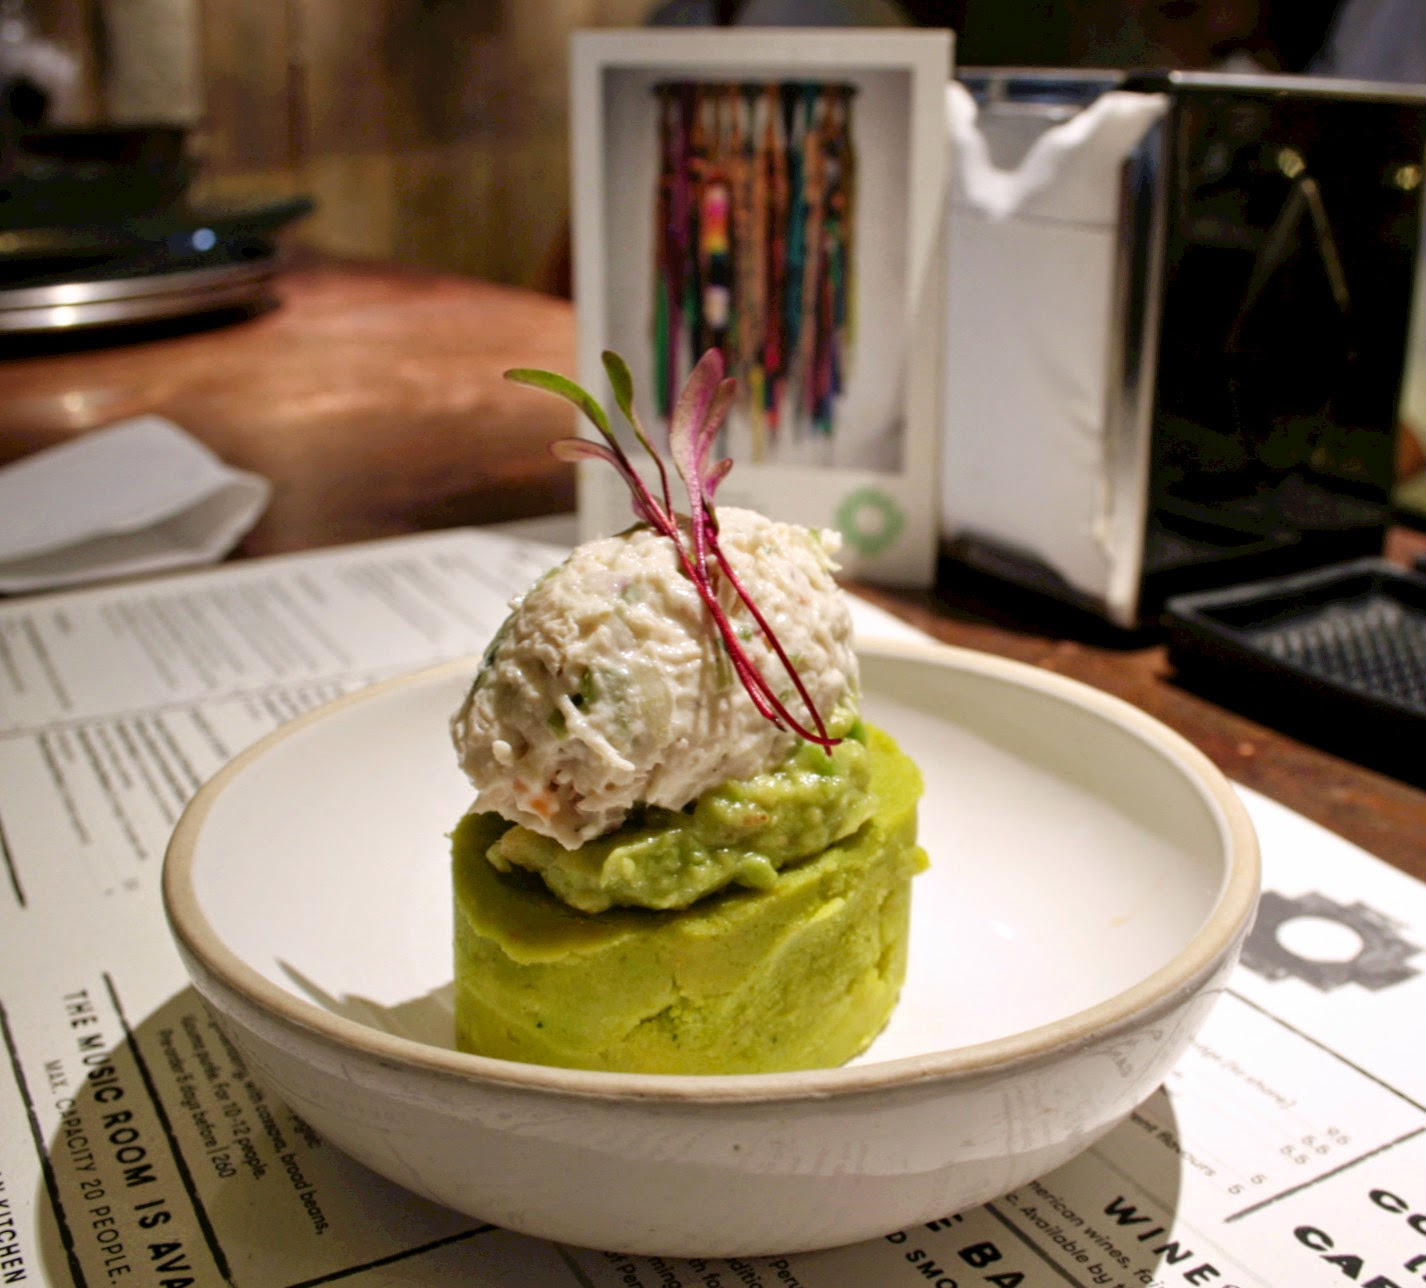 One of my new favourite meals - chicken & avocado causa from Andina, Shoreditch